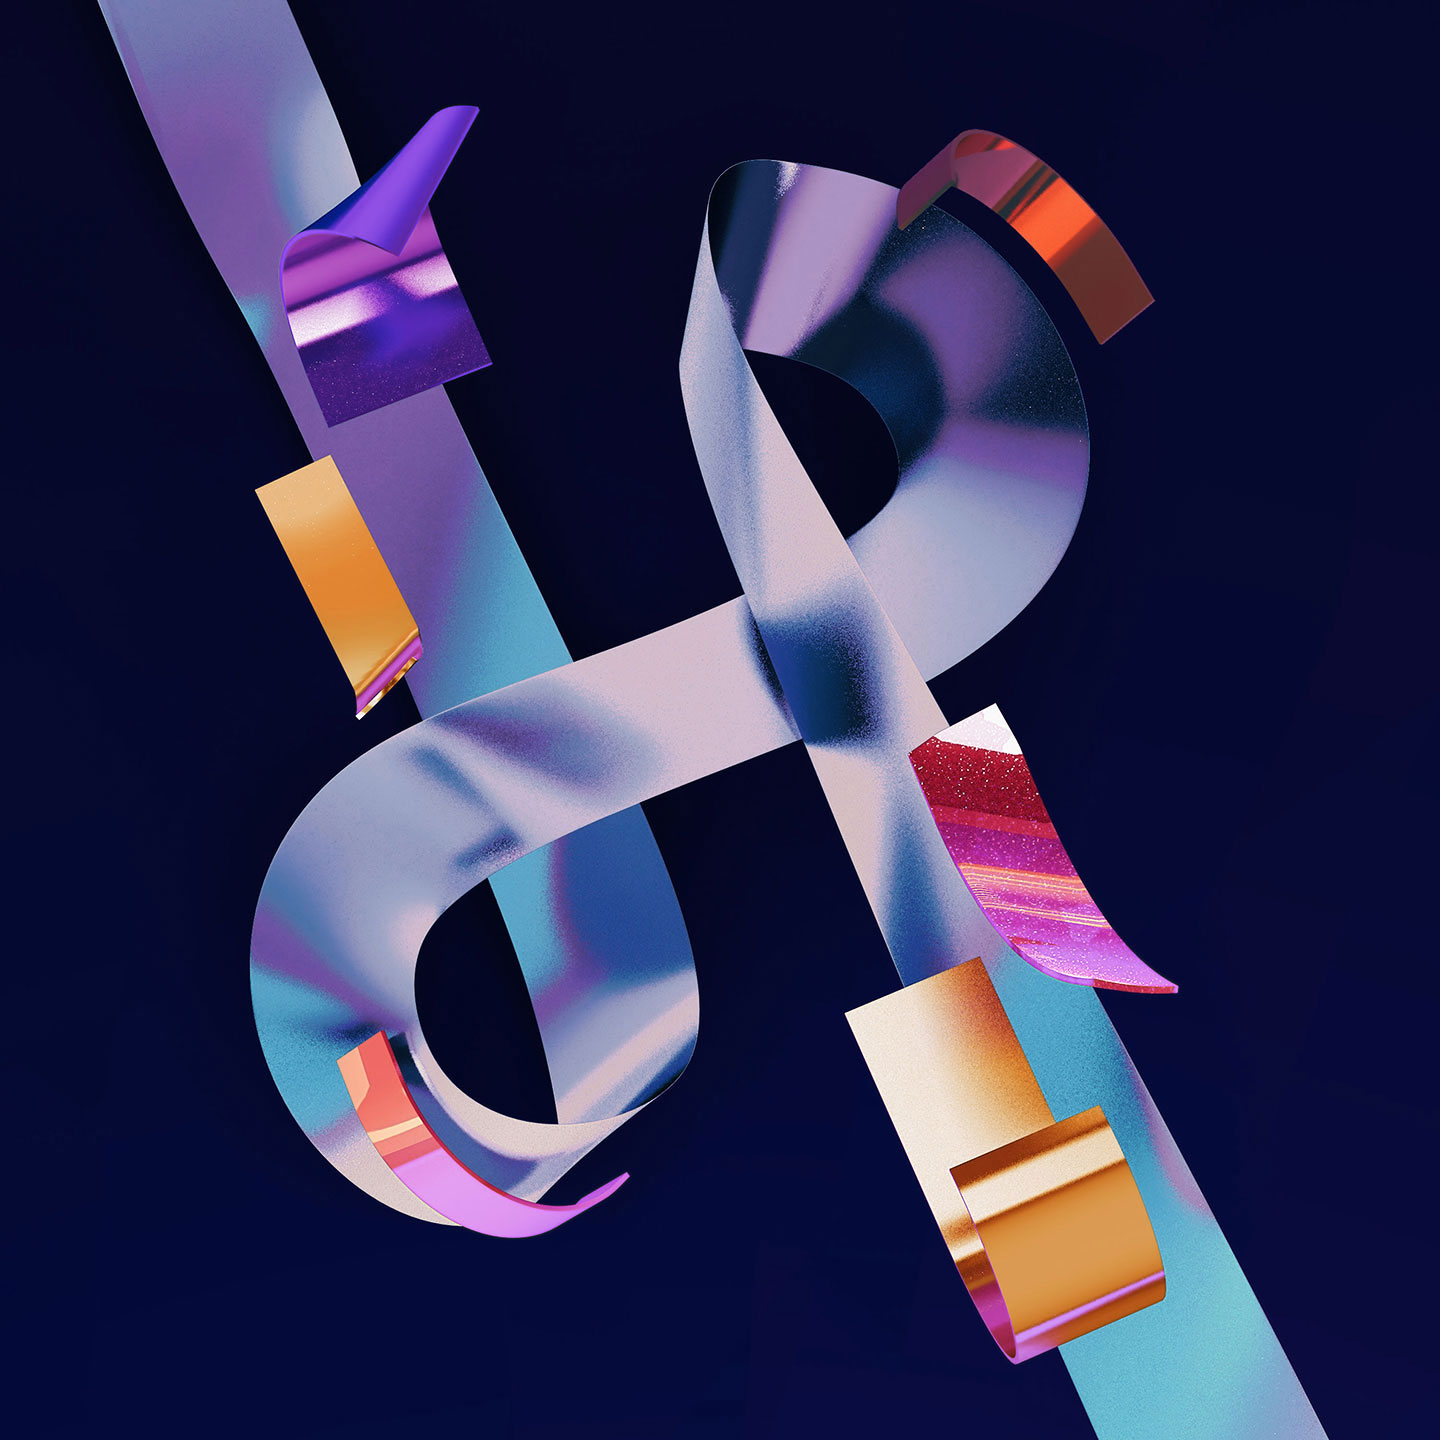 36 Days of Type 2016 - 3D typography letter H visual.